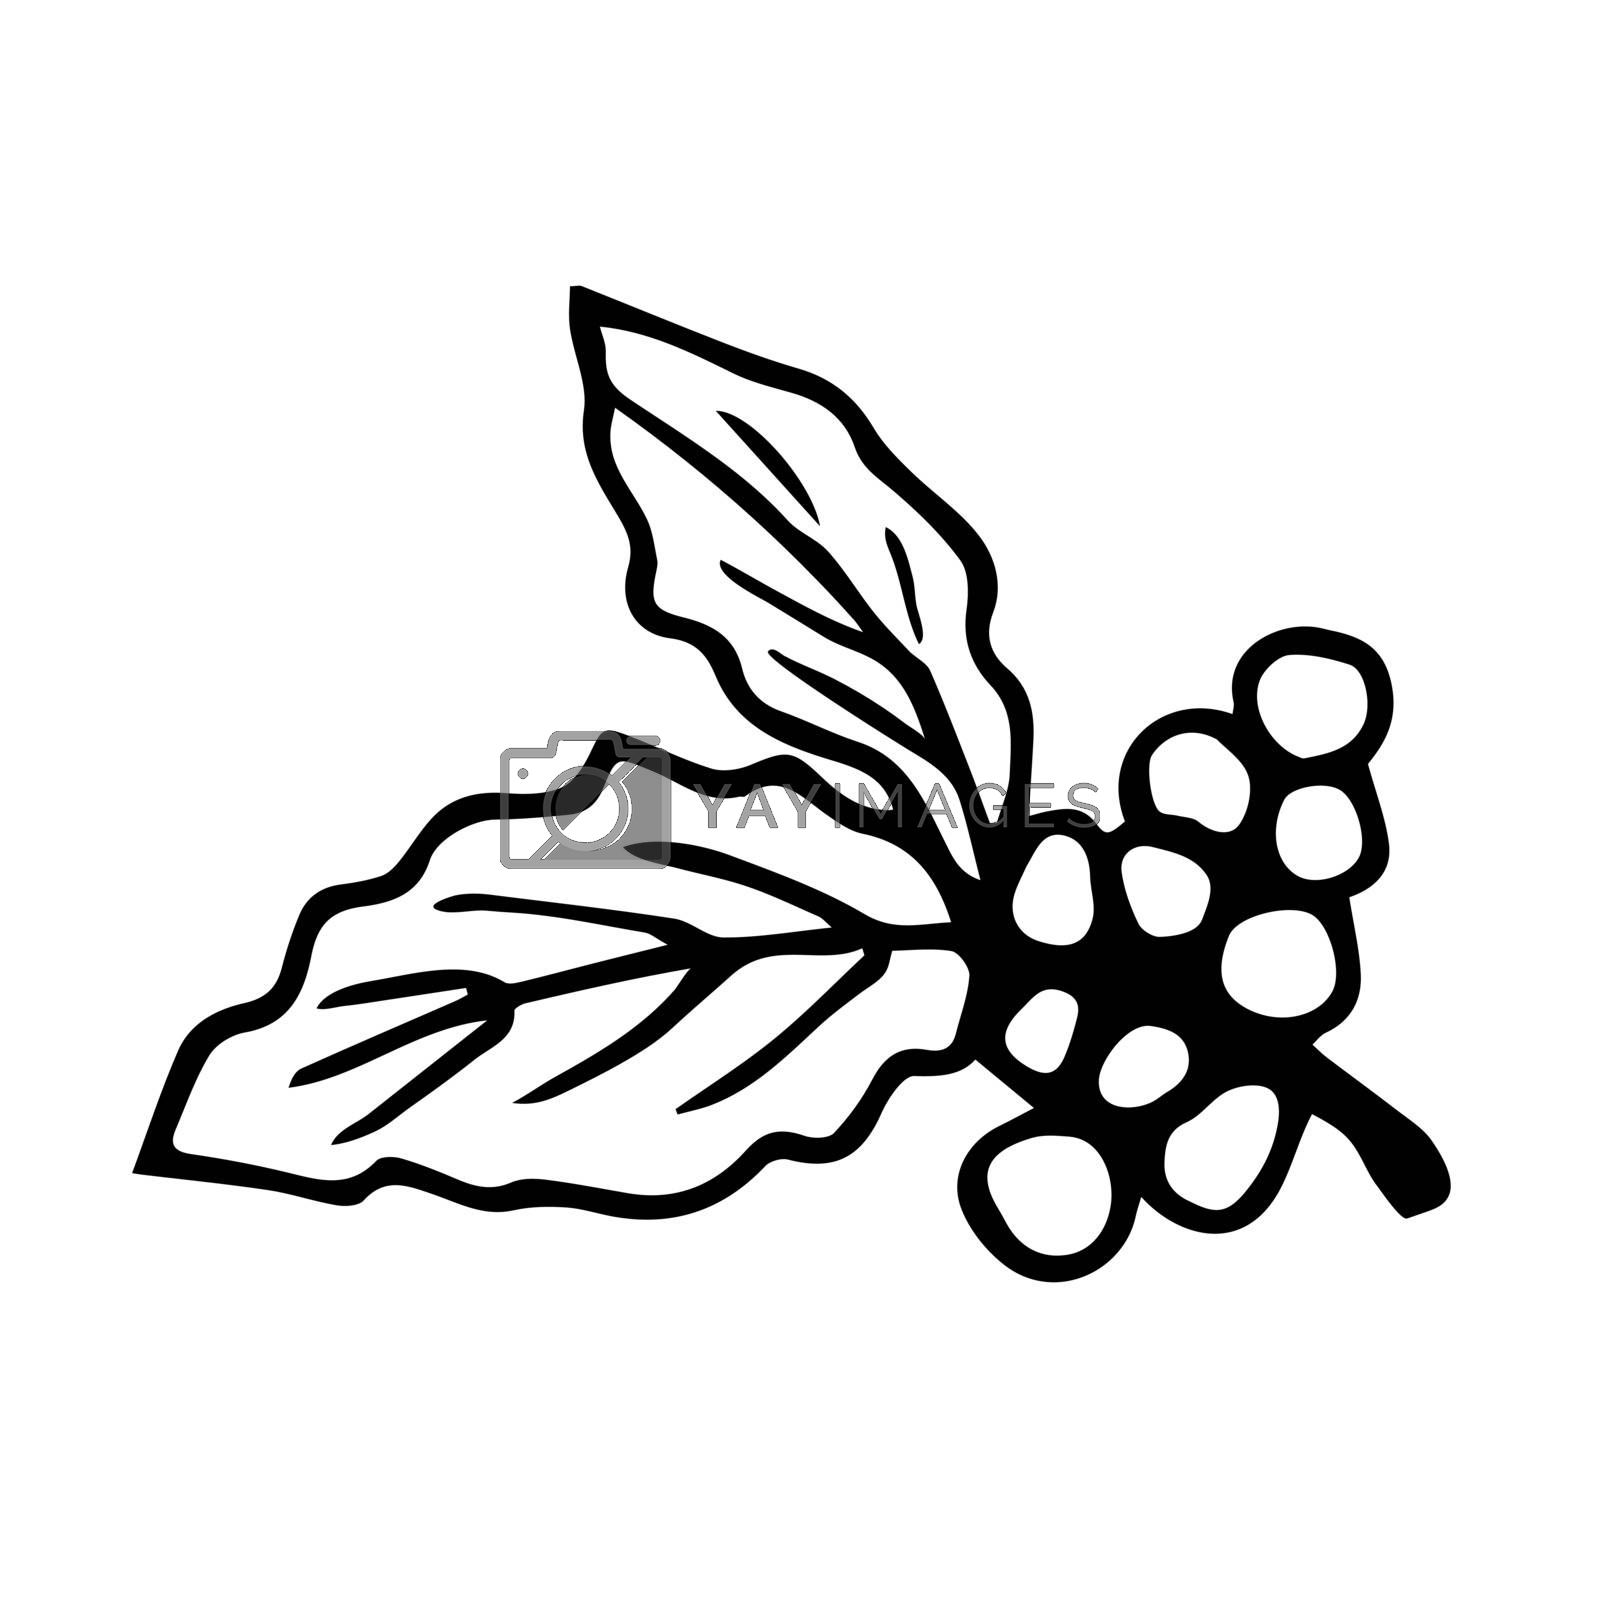 Hand-drawn black outline simple vector drawing. Branch with coffee berries, leaves isolated on a white background. element of nature, product, crop, growing, label.